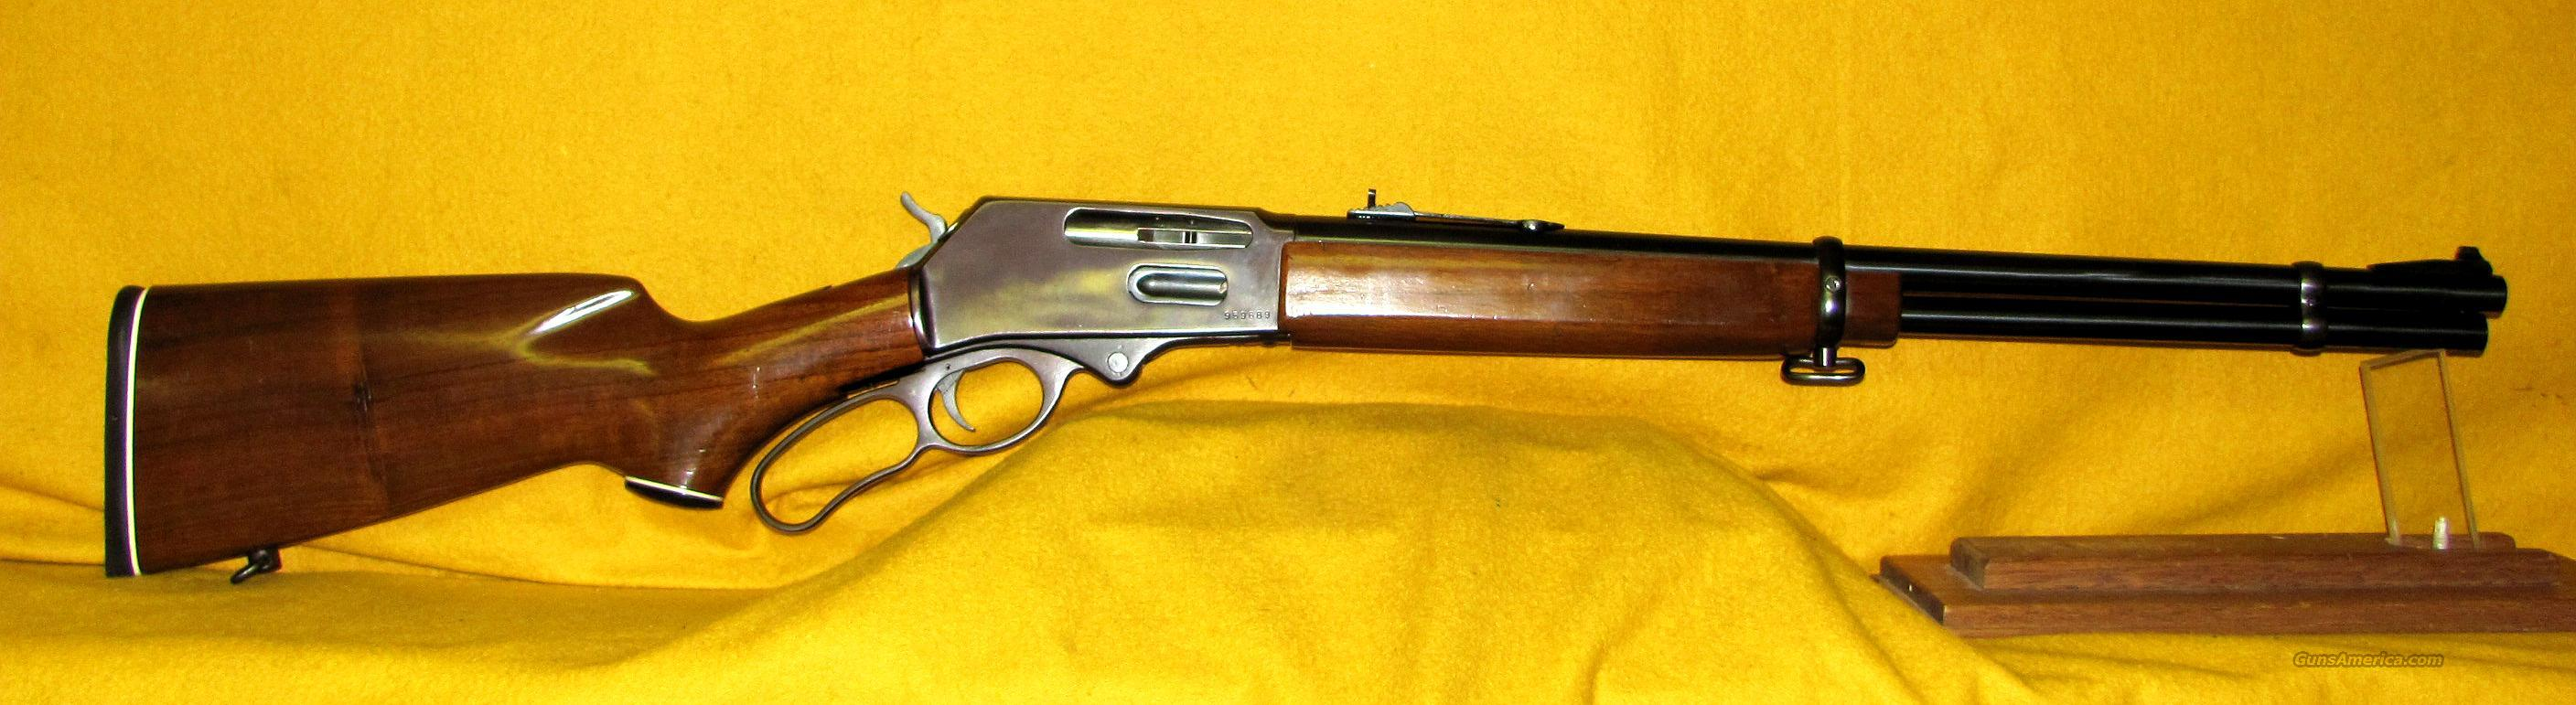 MOSSBERG 472PCA  Guns > Rifles > Mossberg Rifles > Lever Action